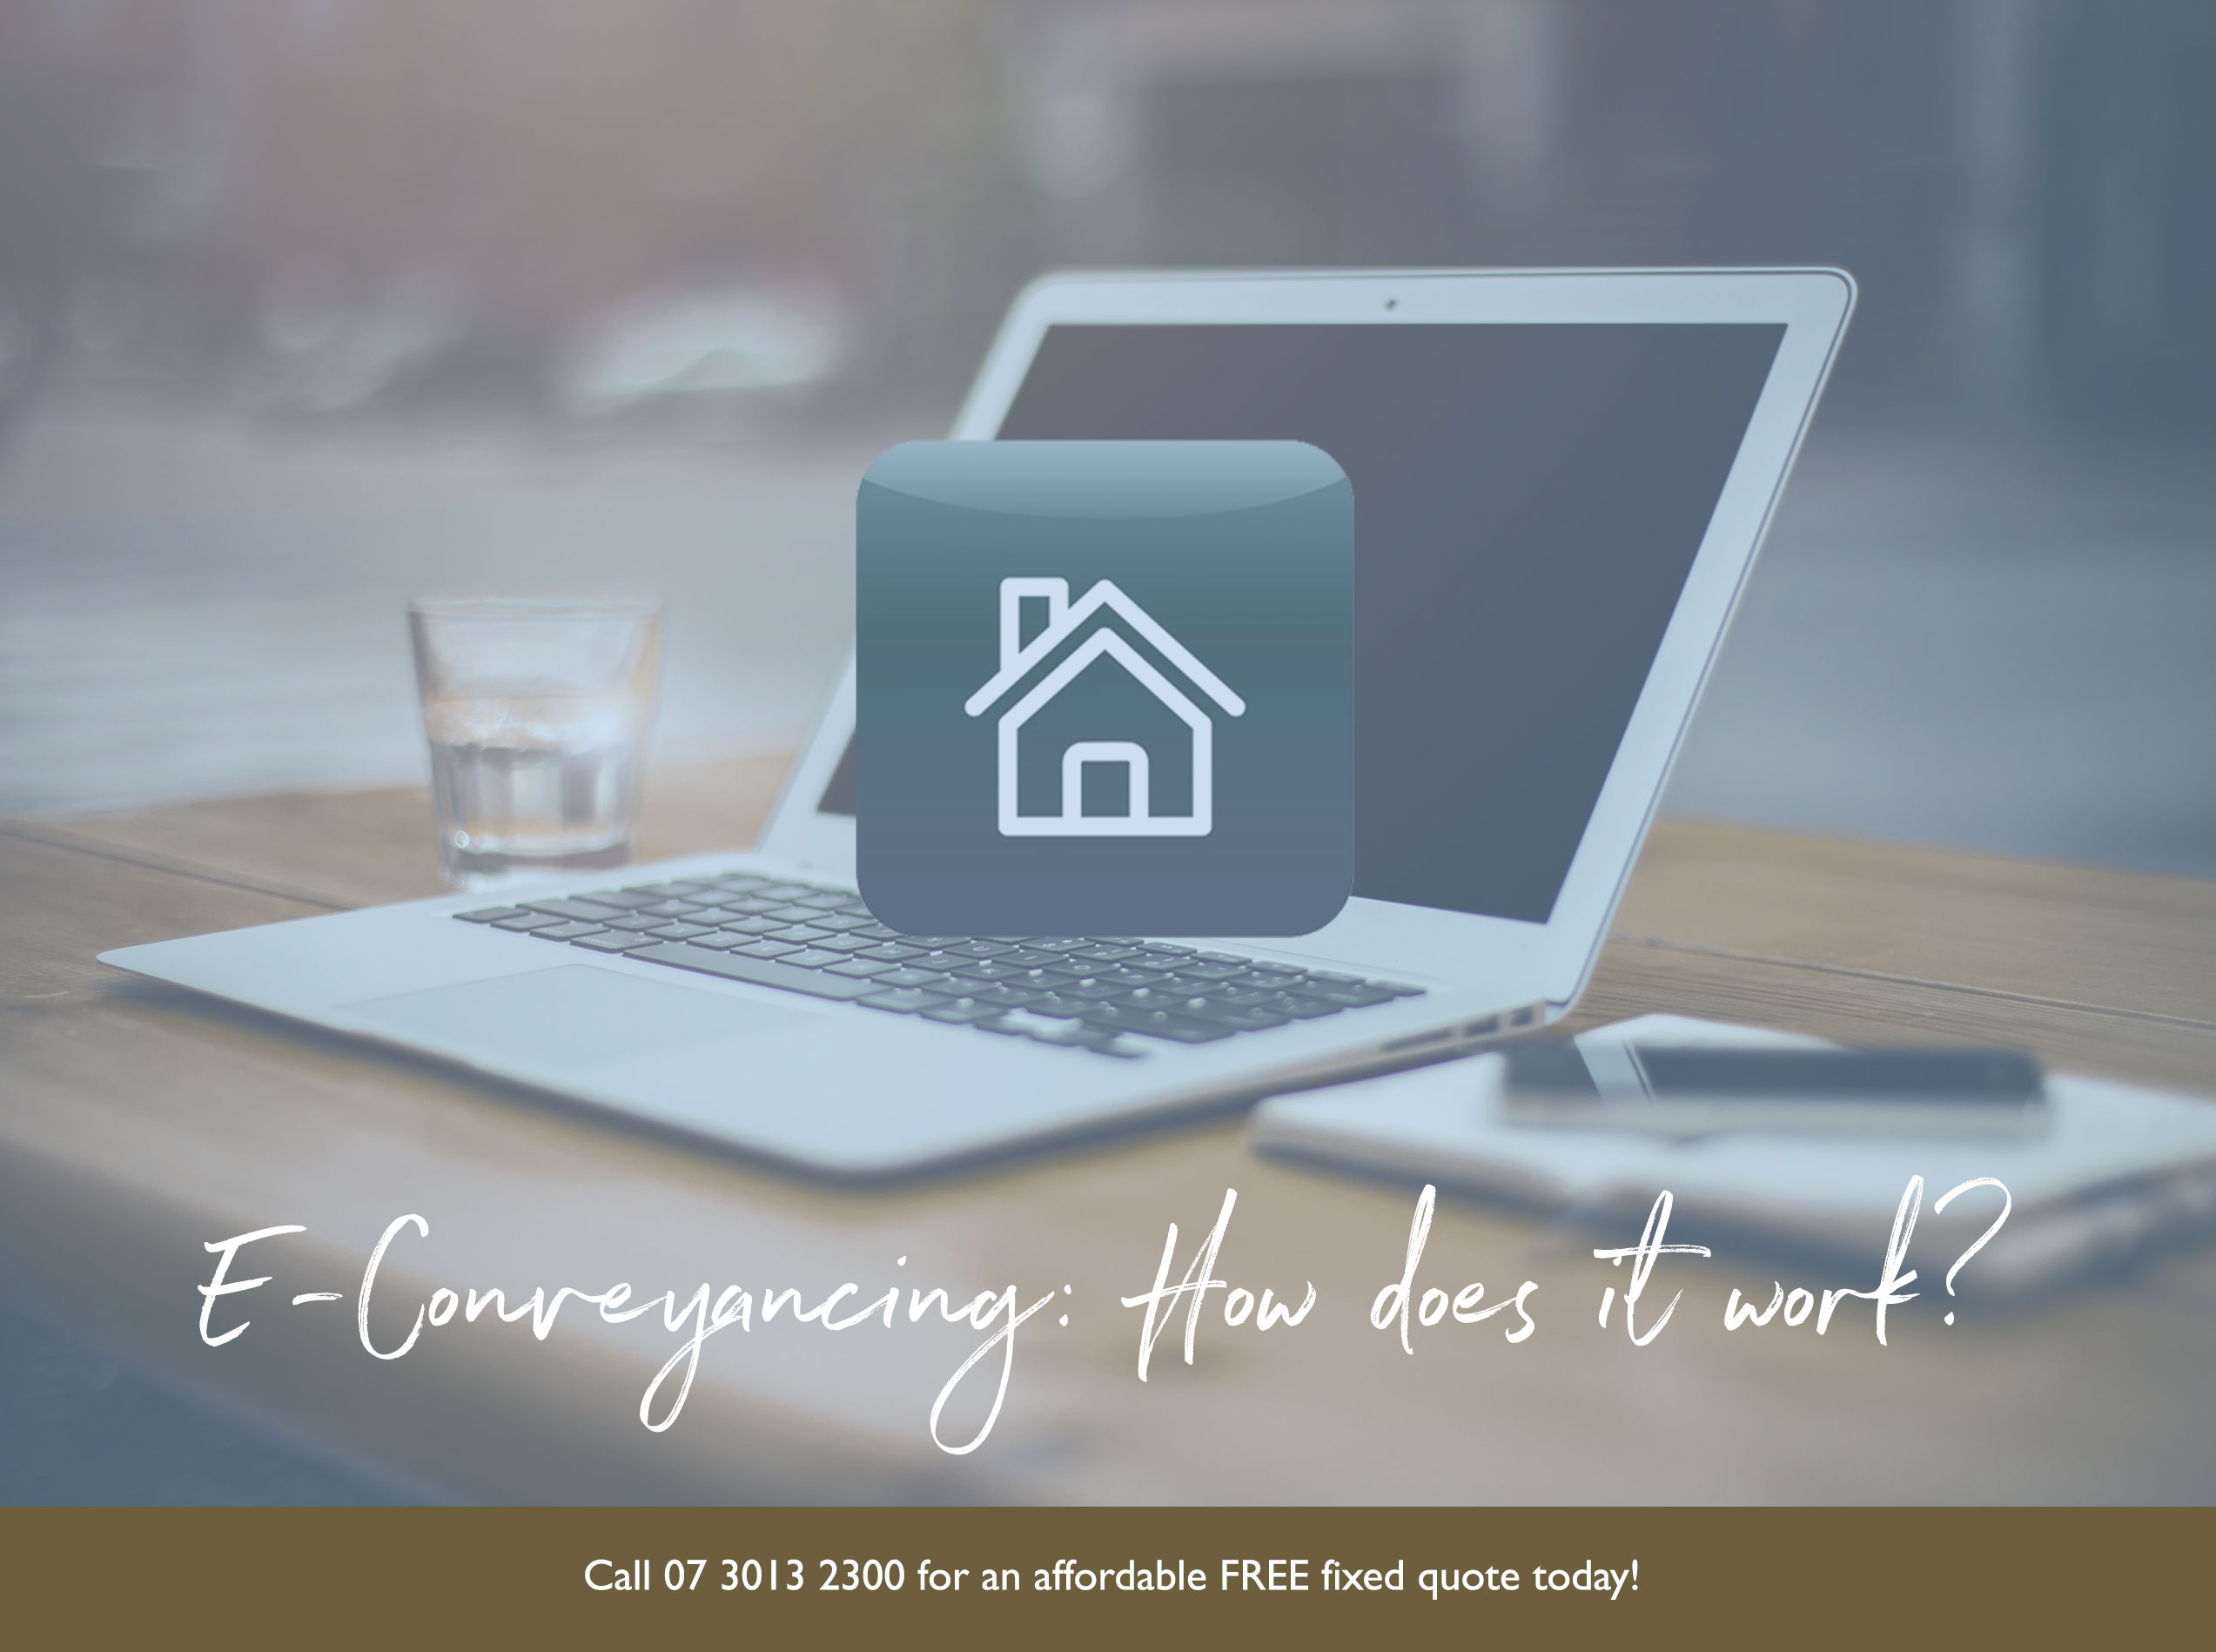 what is eConveyancing